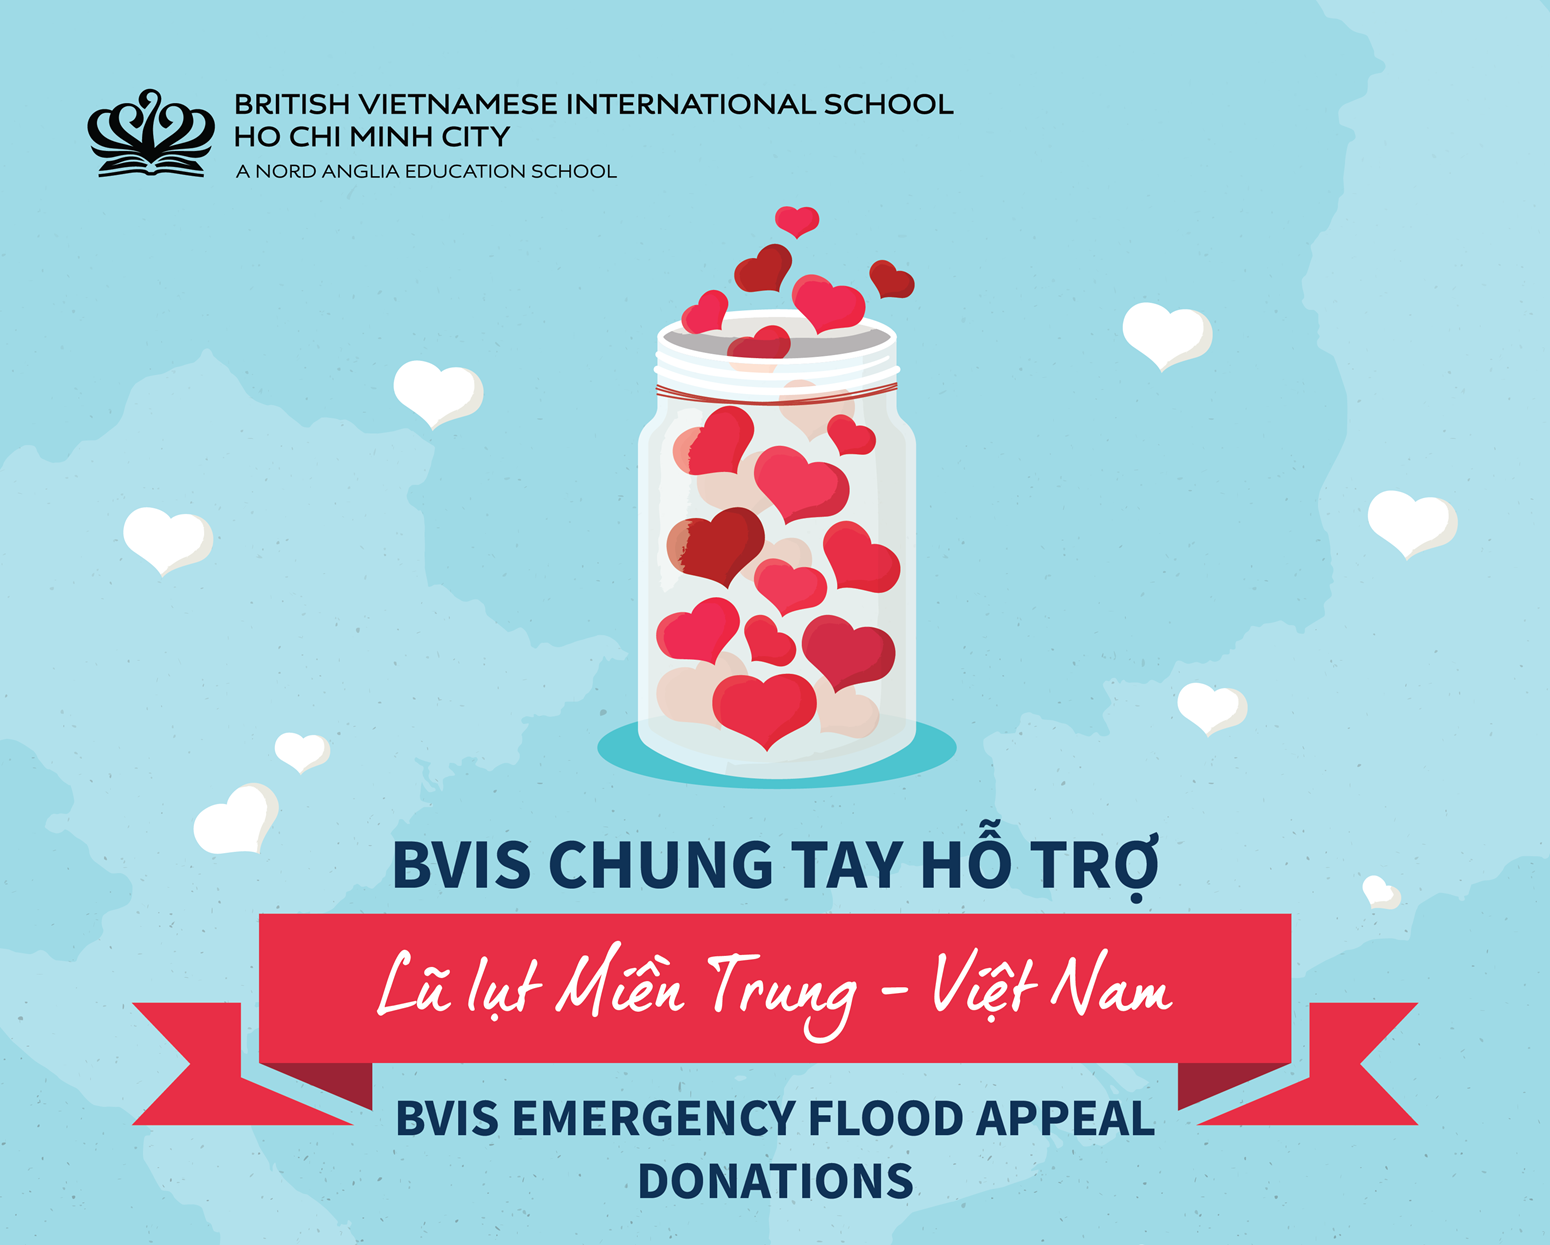 BVIS Emergency Flood Appeal Donations